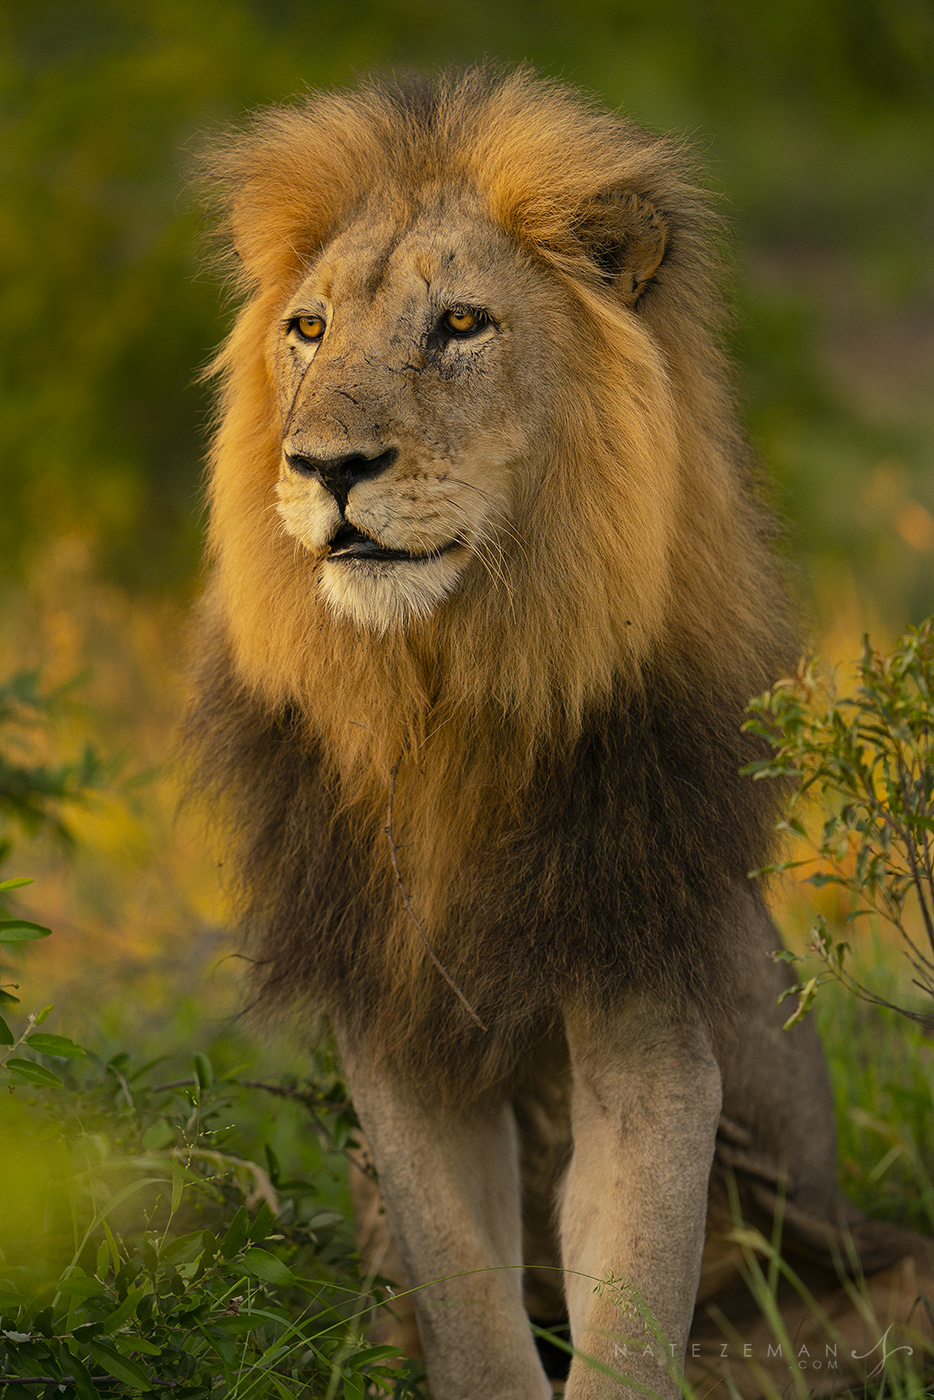 The last warm rays of sunset light strike the mane of abeautiful male lion surveying a herd of zebras in the distance.&...